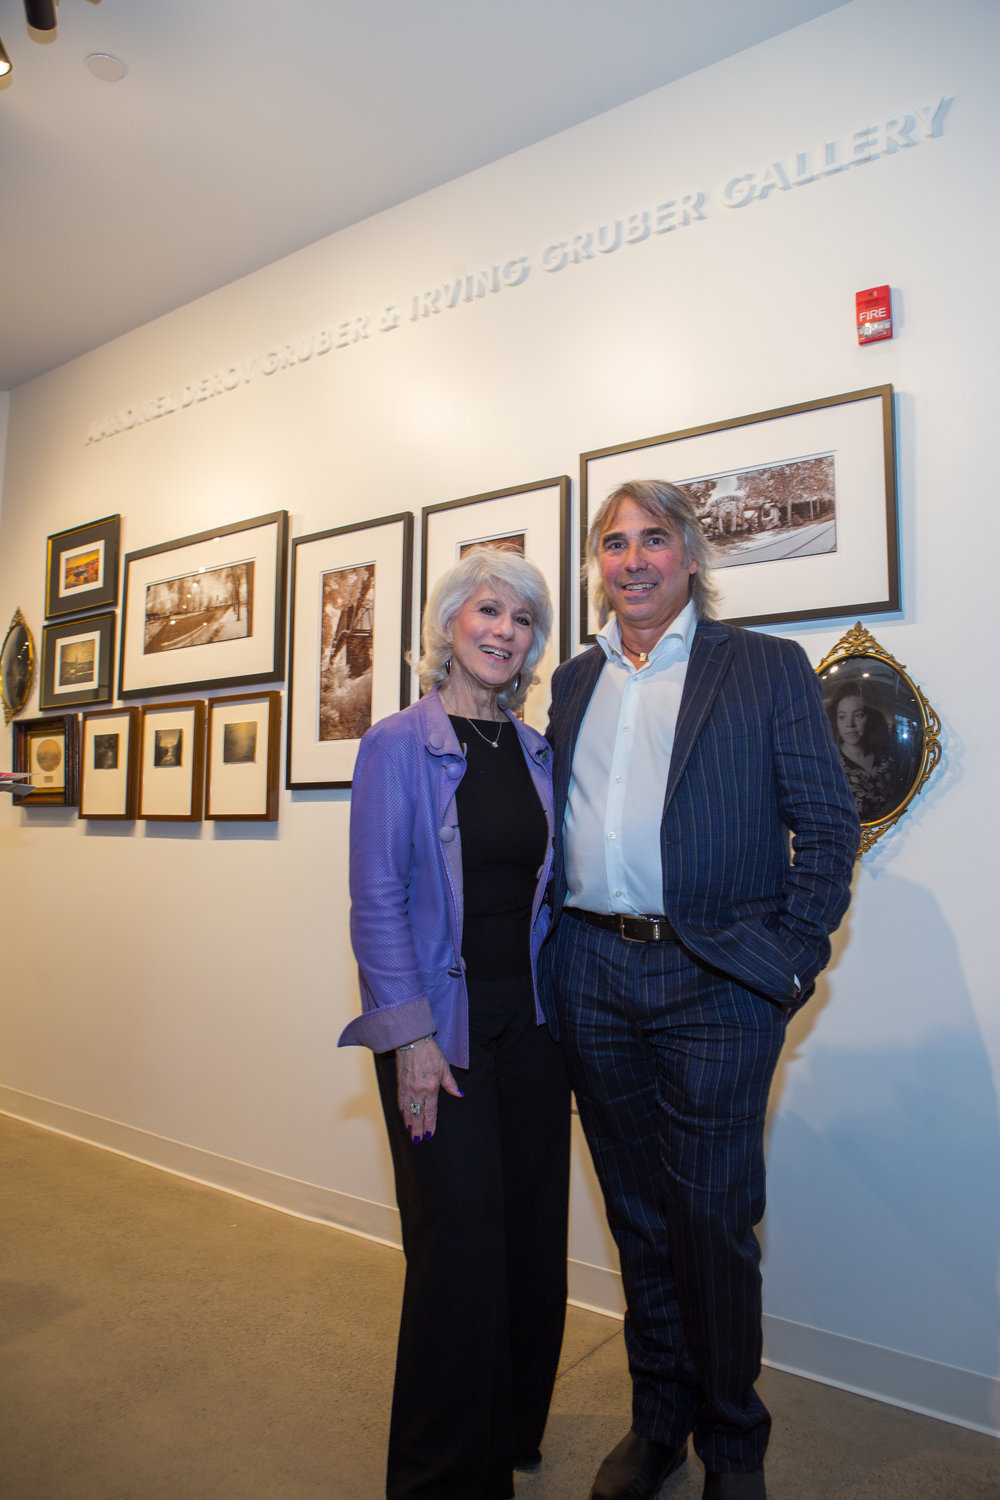 Terry Gruber and Sister in the Gruber Gallery.jpg